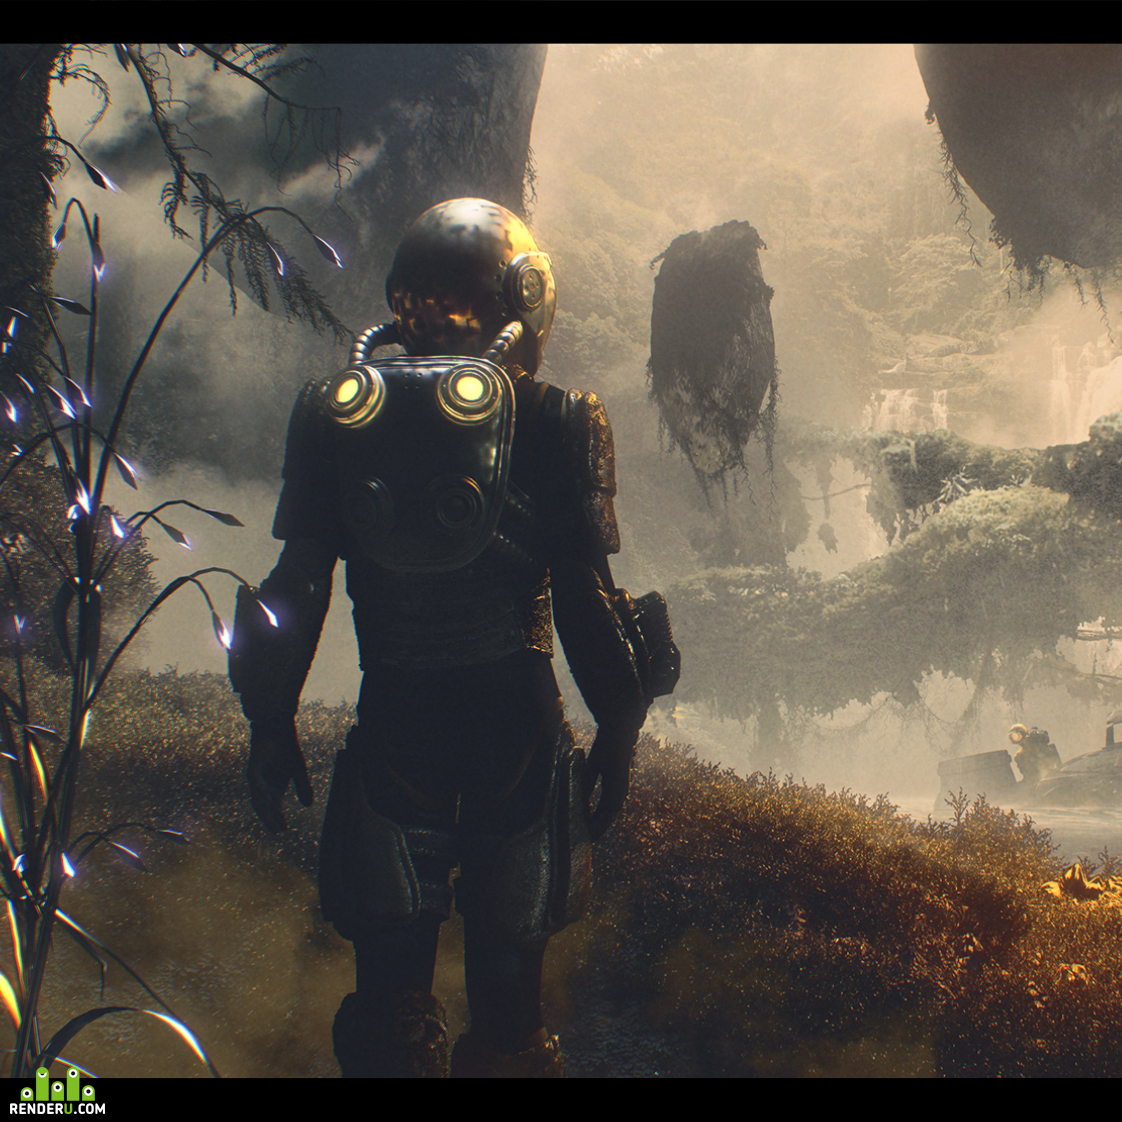 preview Arrival - sci-fi illustration